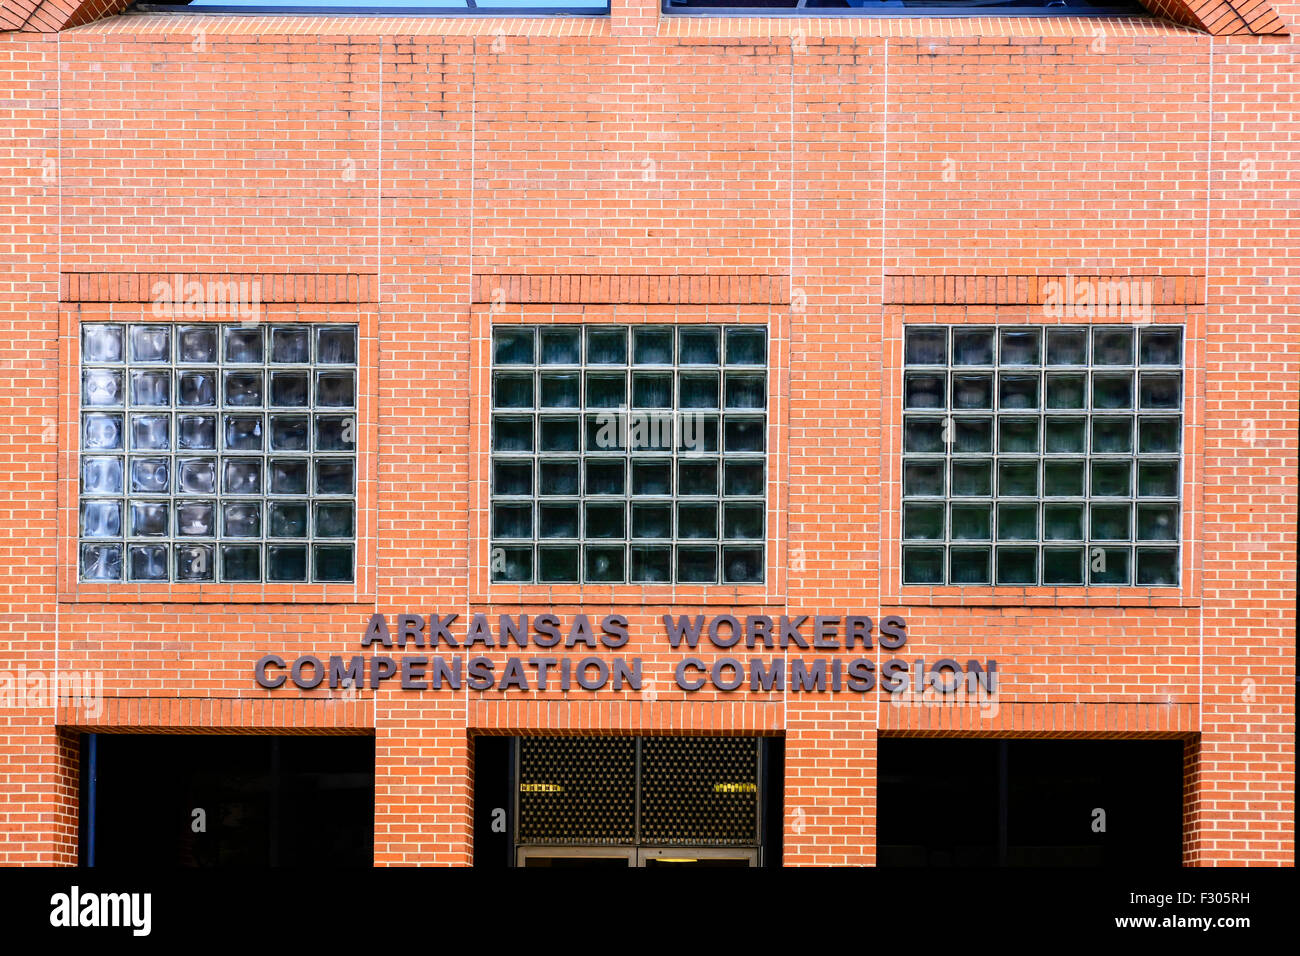 The redbrick Arkansas Workers Compensation Commission building in downtown Little Rock - Stock Image